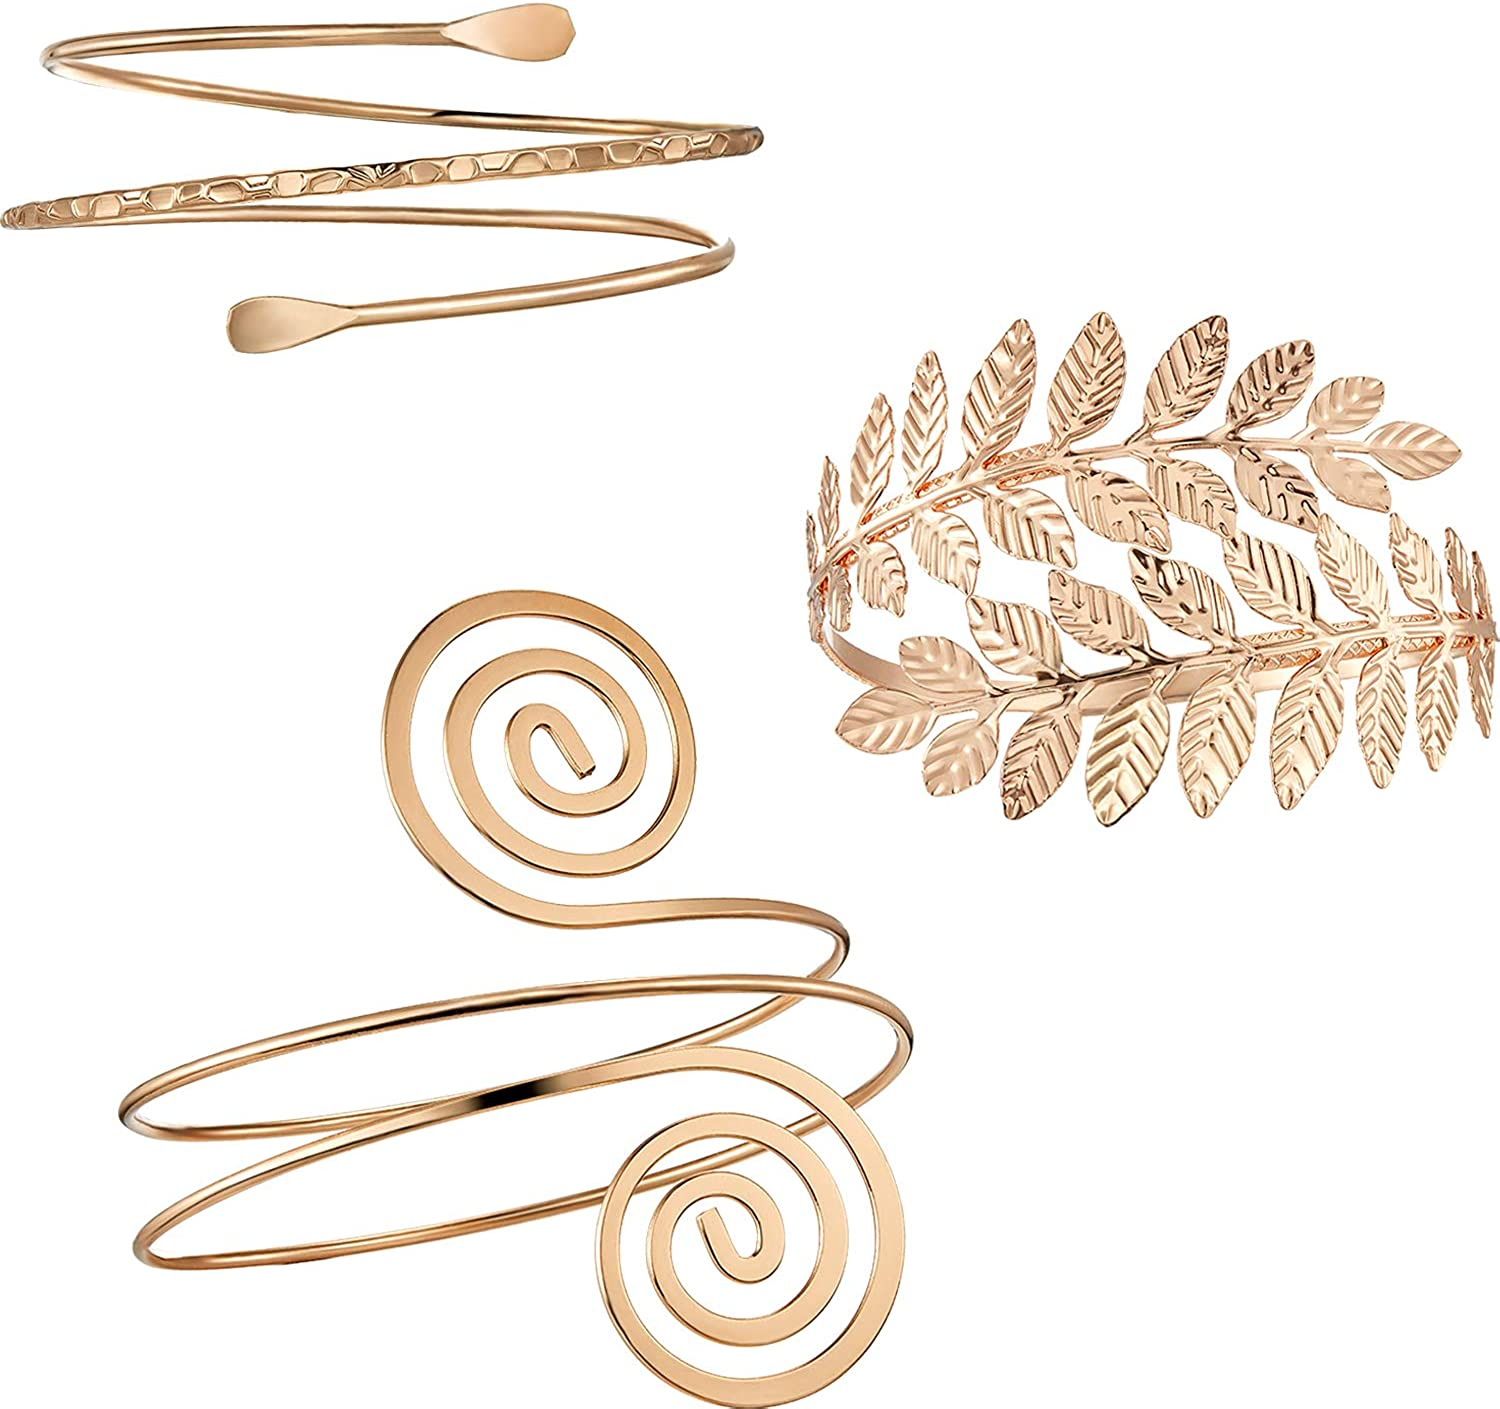 Hicarer 3 Pieces Upper Arm Bracelet Gold Metal Coil Swirl Leaf Armband Cuff Fashion Simple Arm Bangle Armlet Adjustable for Women Girls